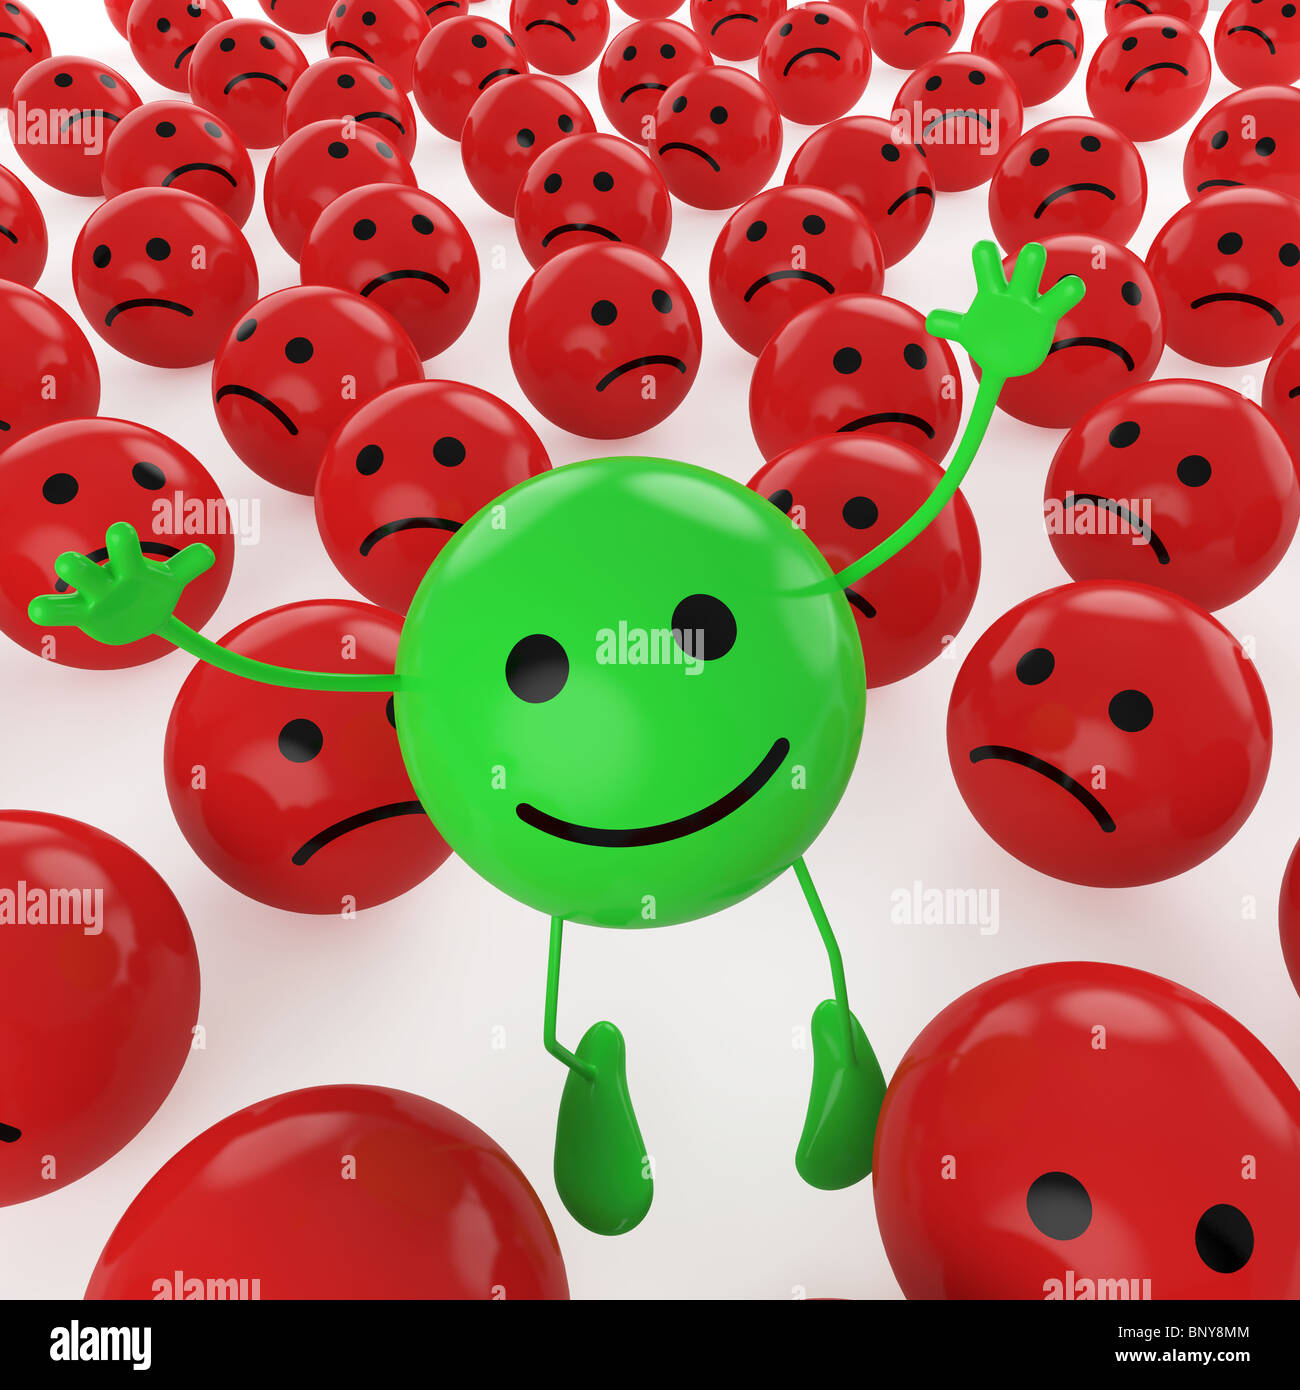 A green smiley happy jumping among many sad red others as concept for unique, optimistic, hapiness, difference. - Stock Image